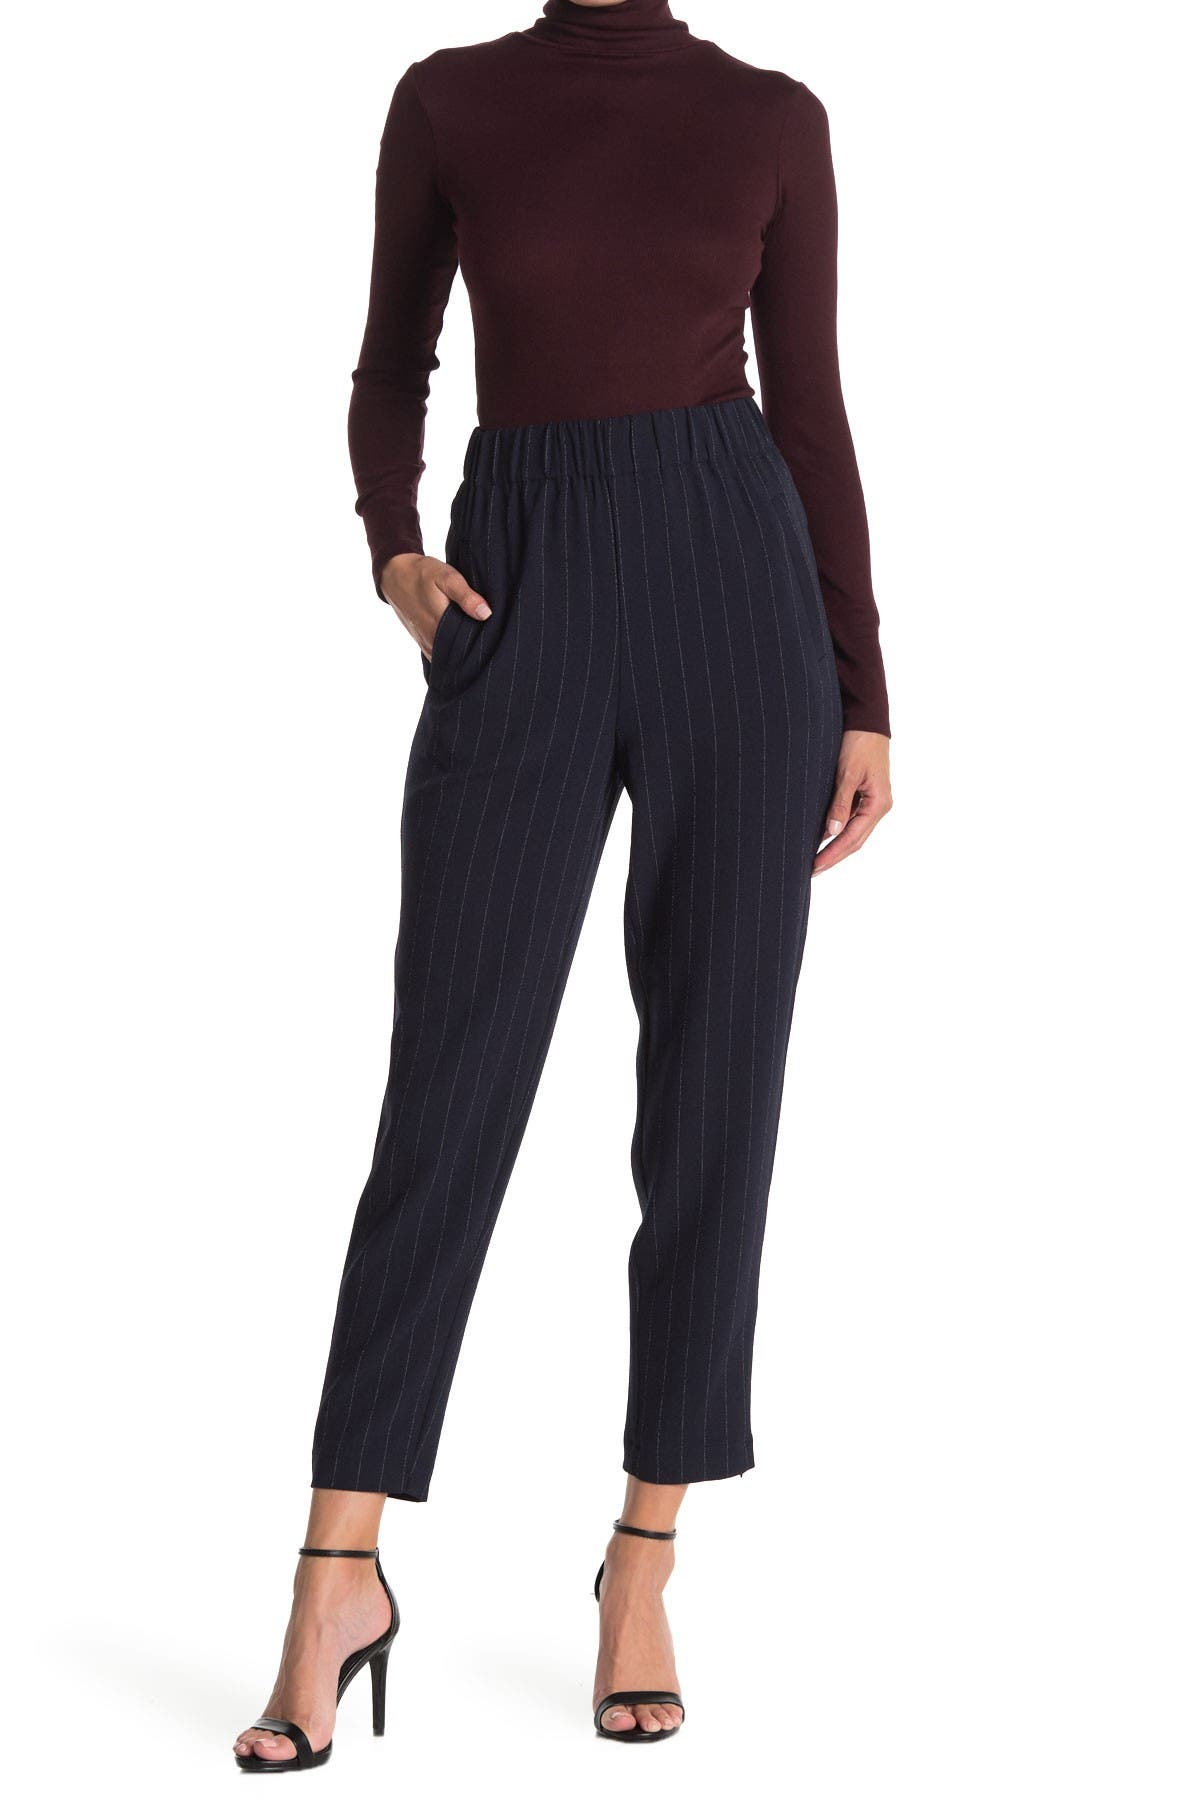 Image of GANNI Heavy High Rise Crepe Pants